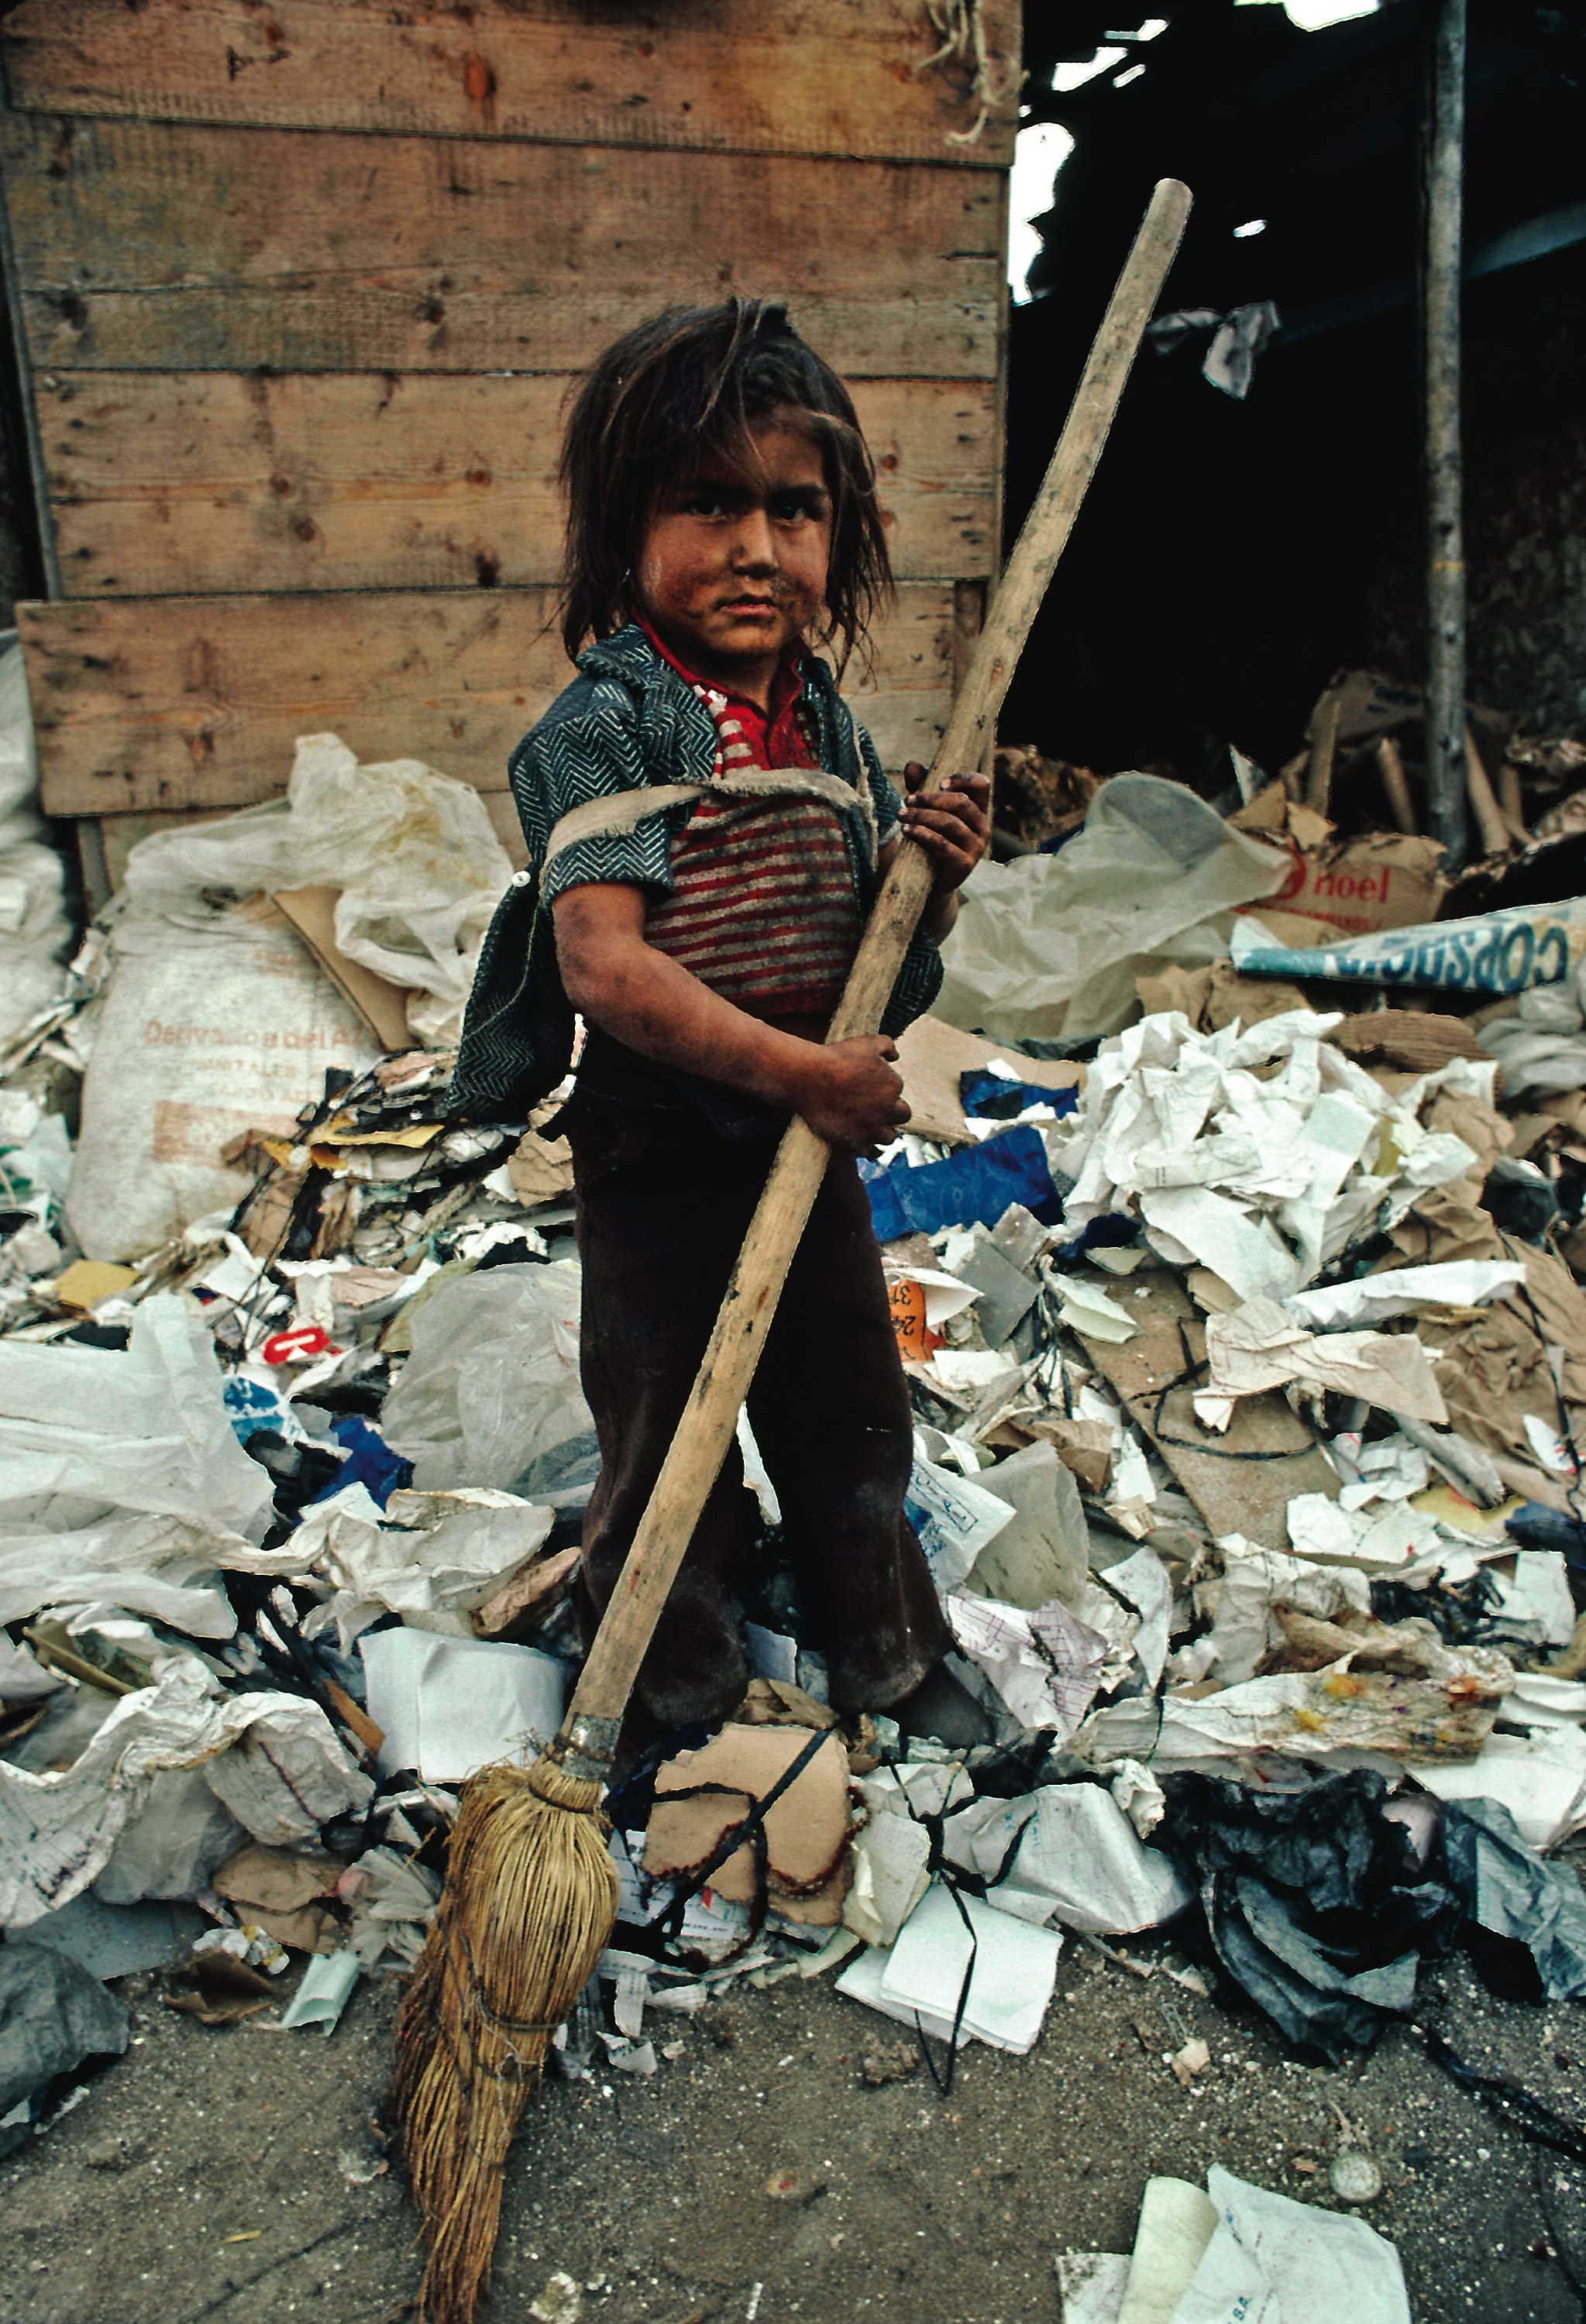 Child And Poverty Wallpapers High Quality | Download Free